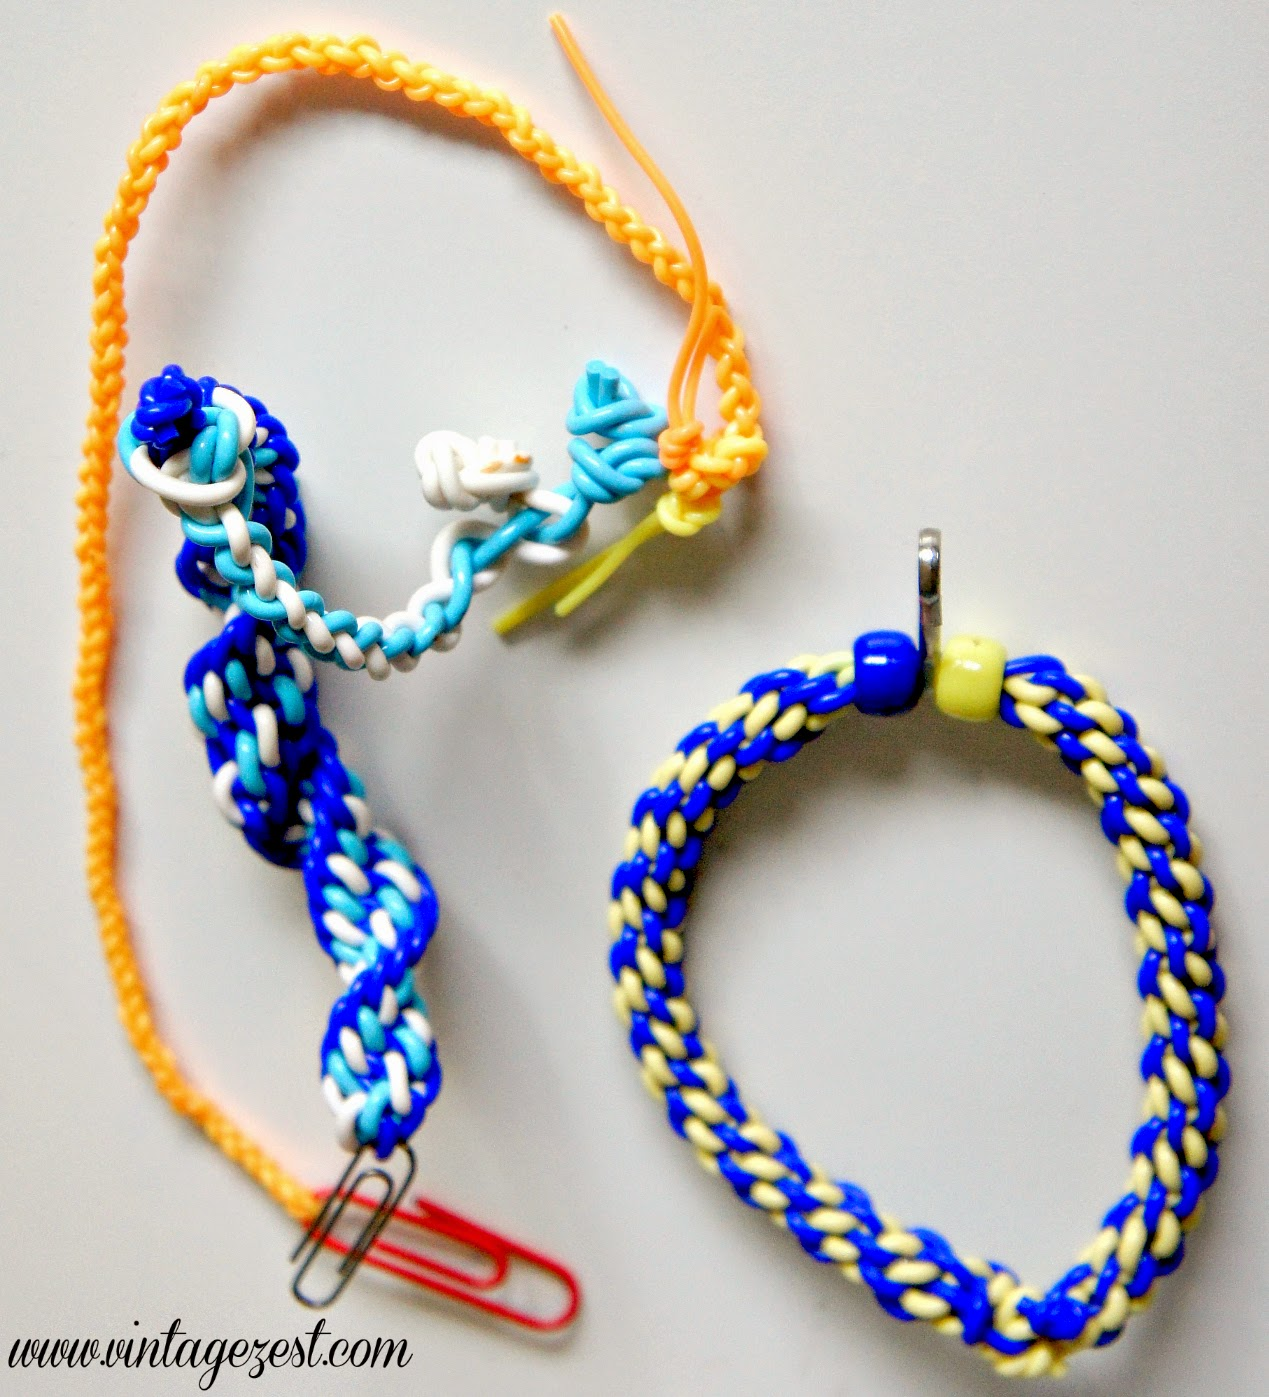 Craft Rewind: Lanyards on Diane's Vintage Zest!